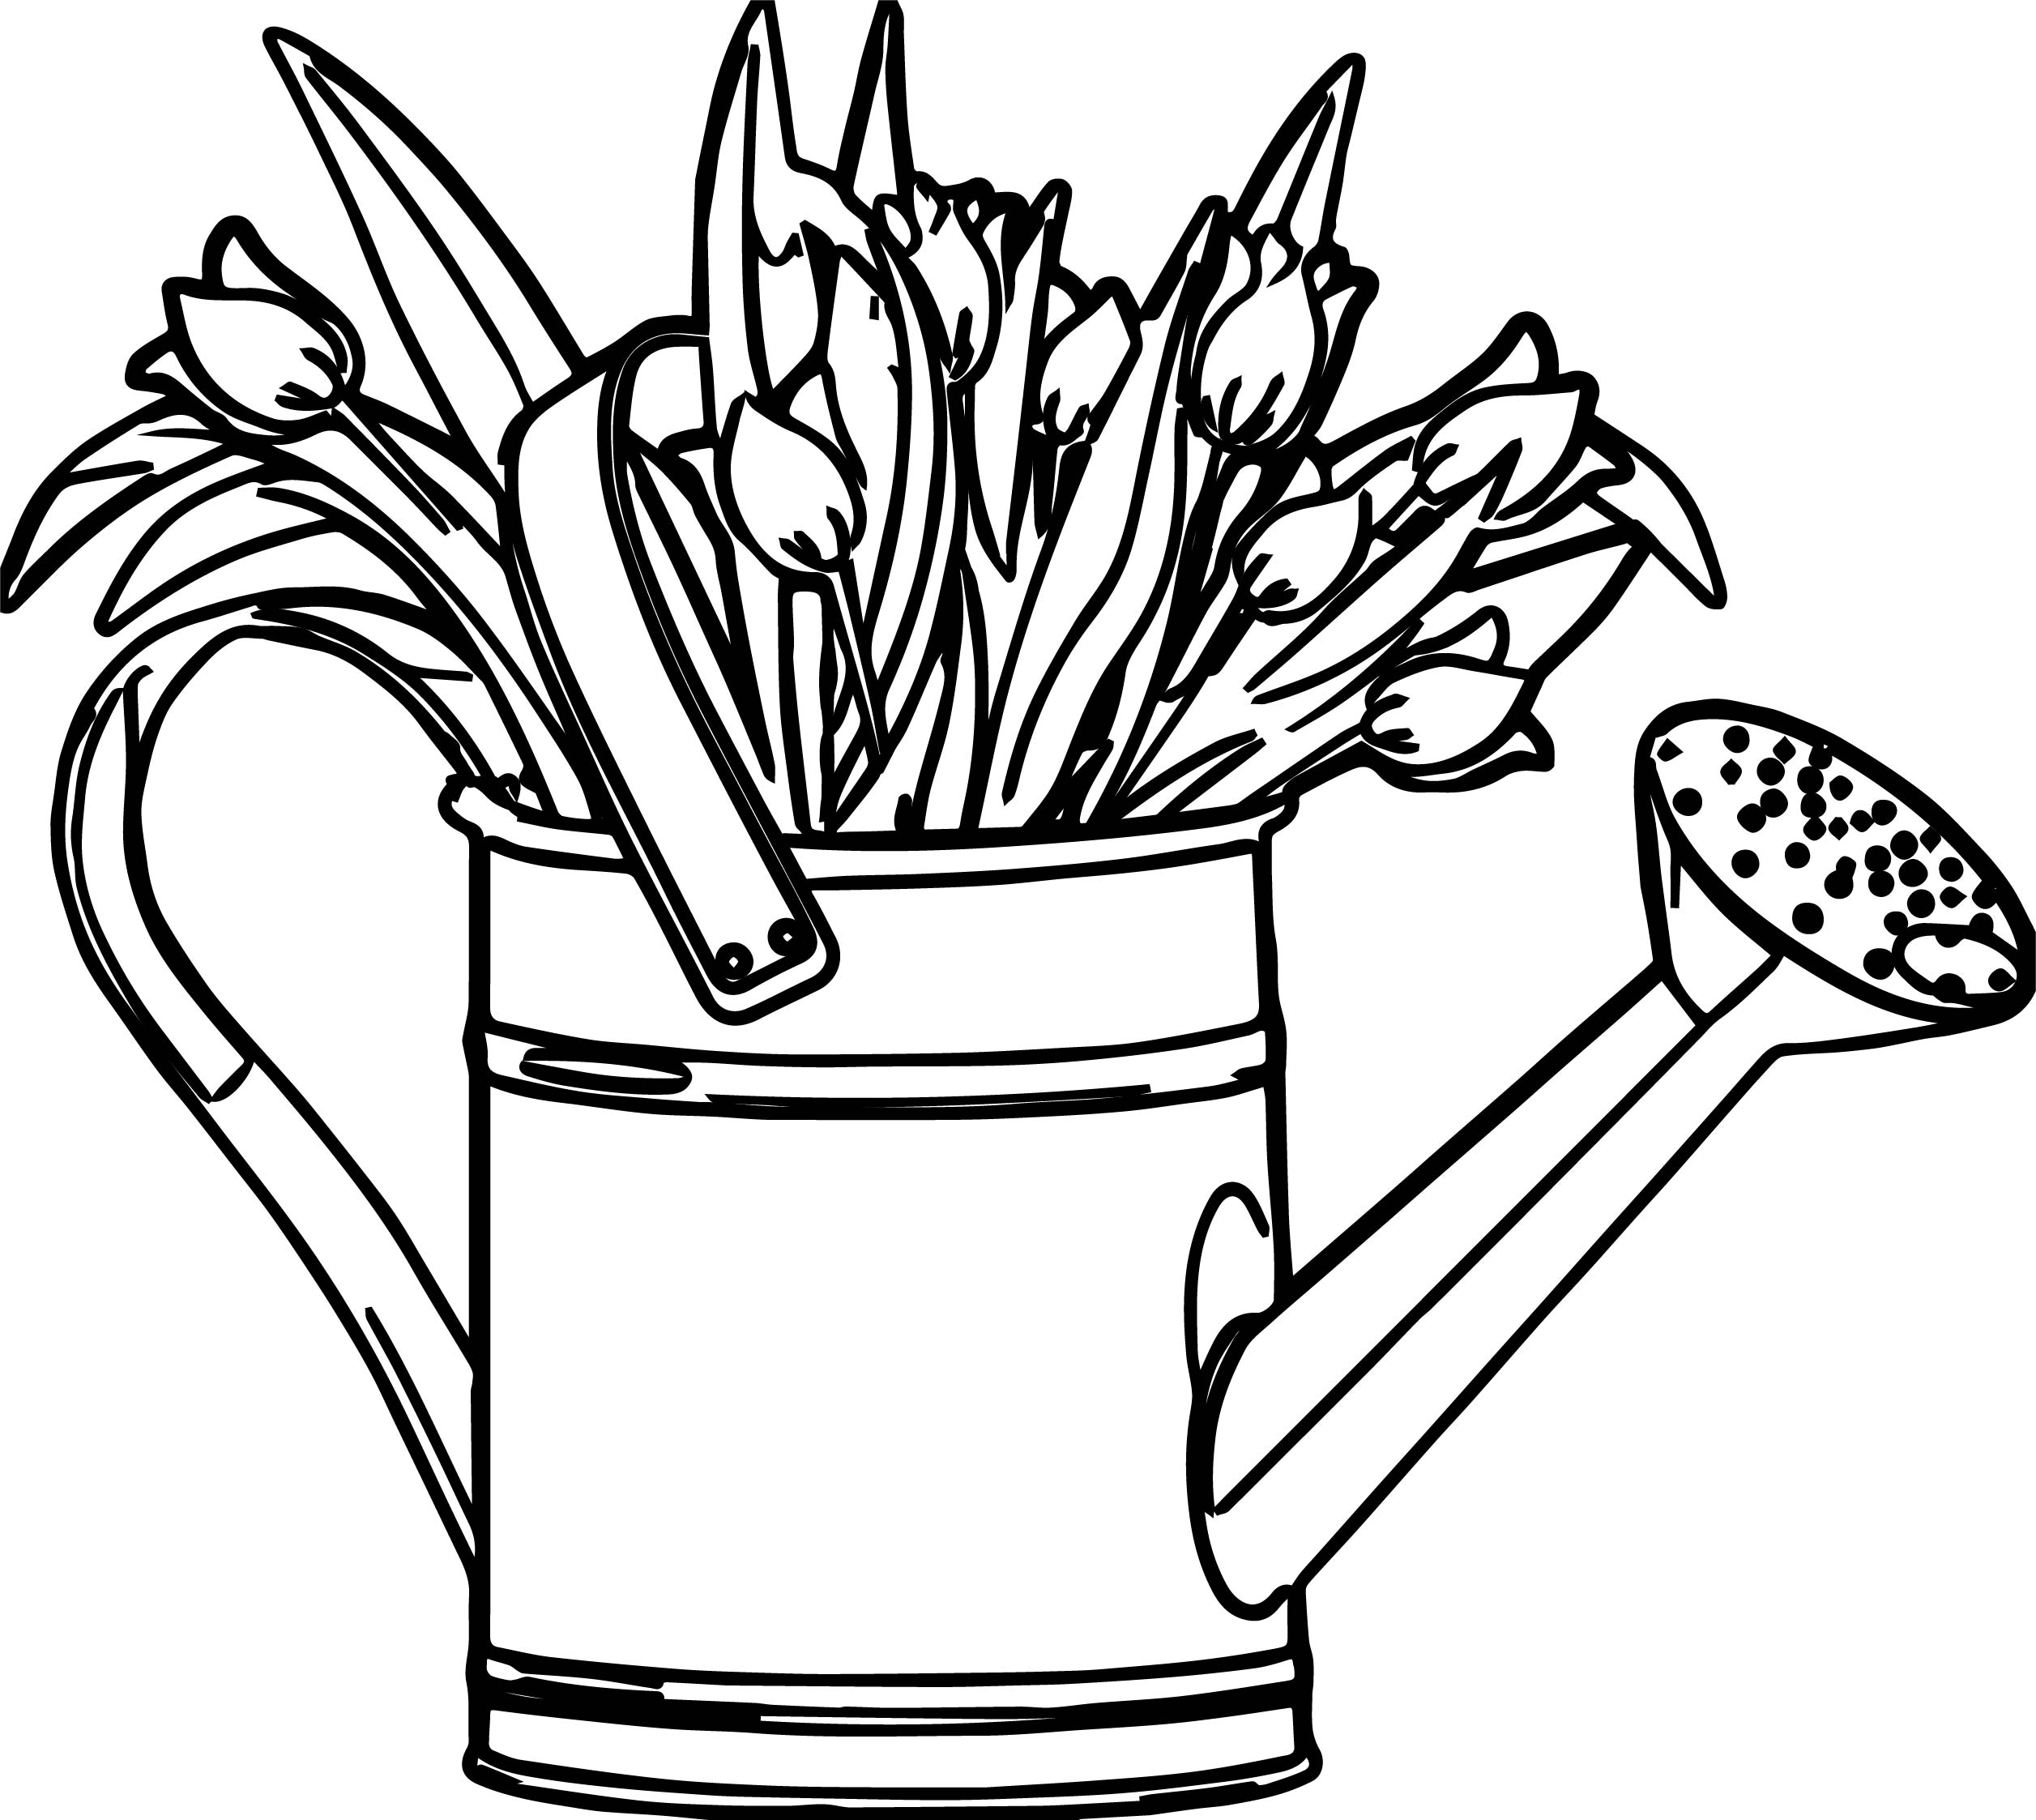 April Shower Bucket Coloring Page Wecoloringpage